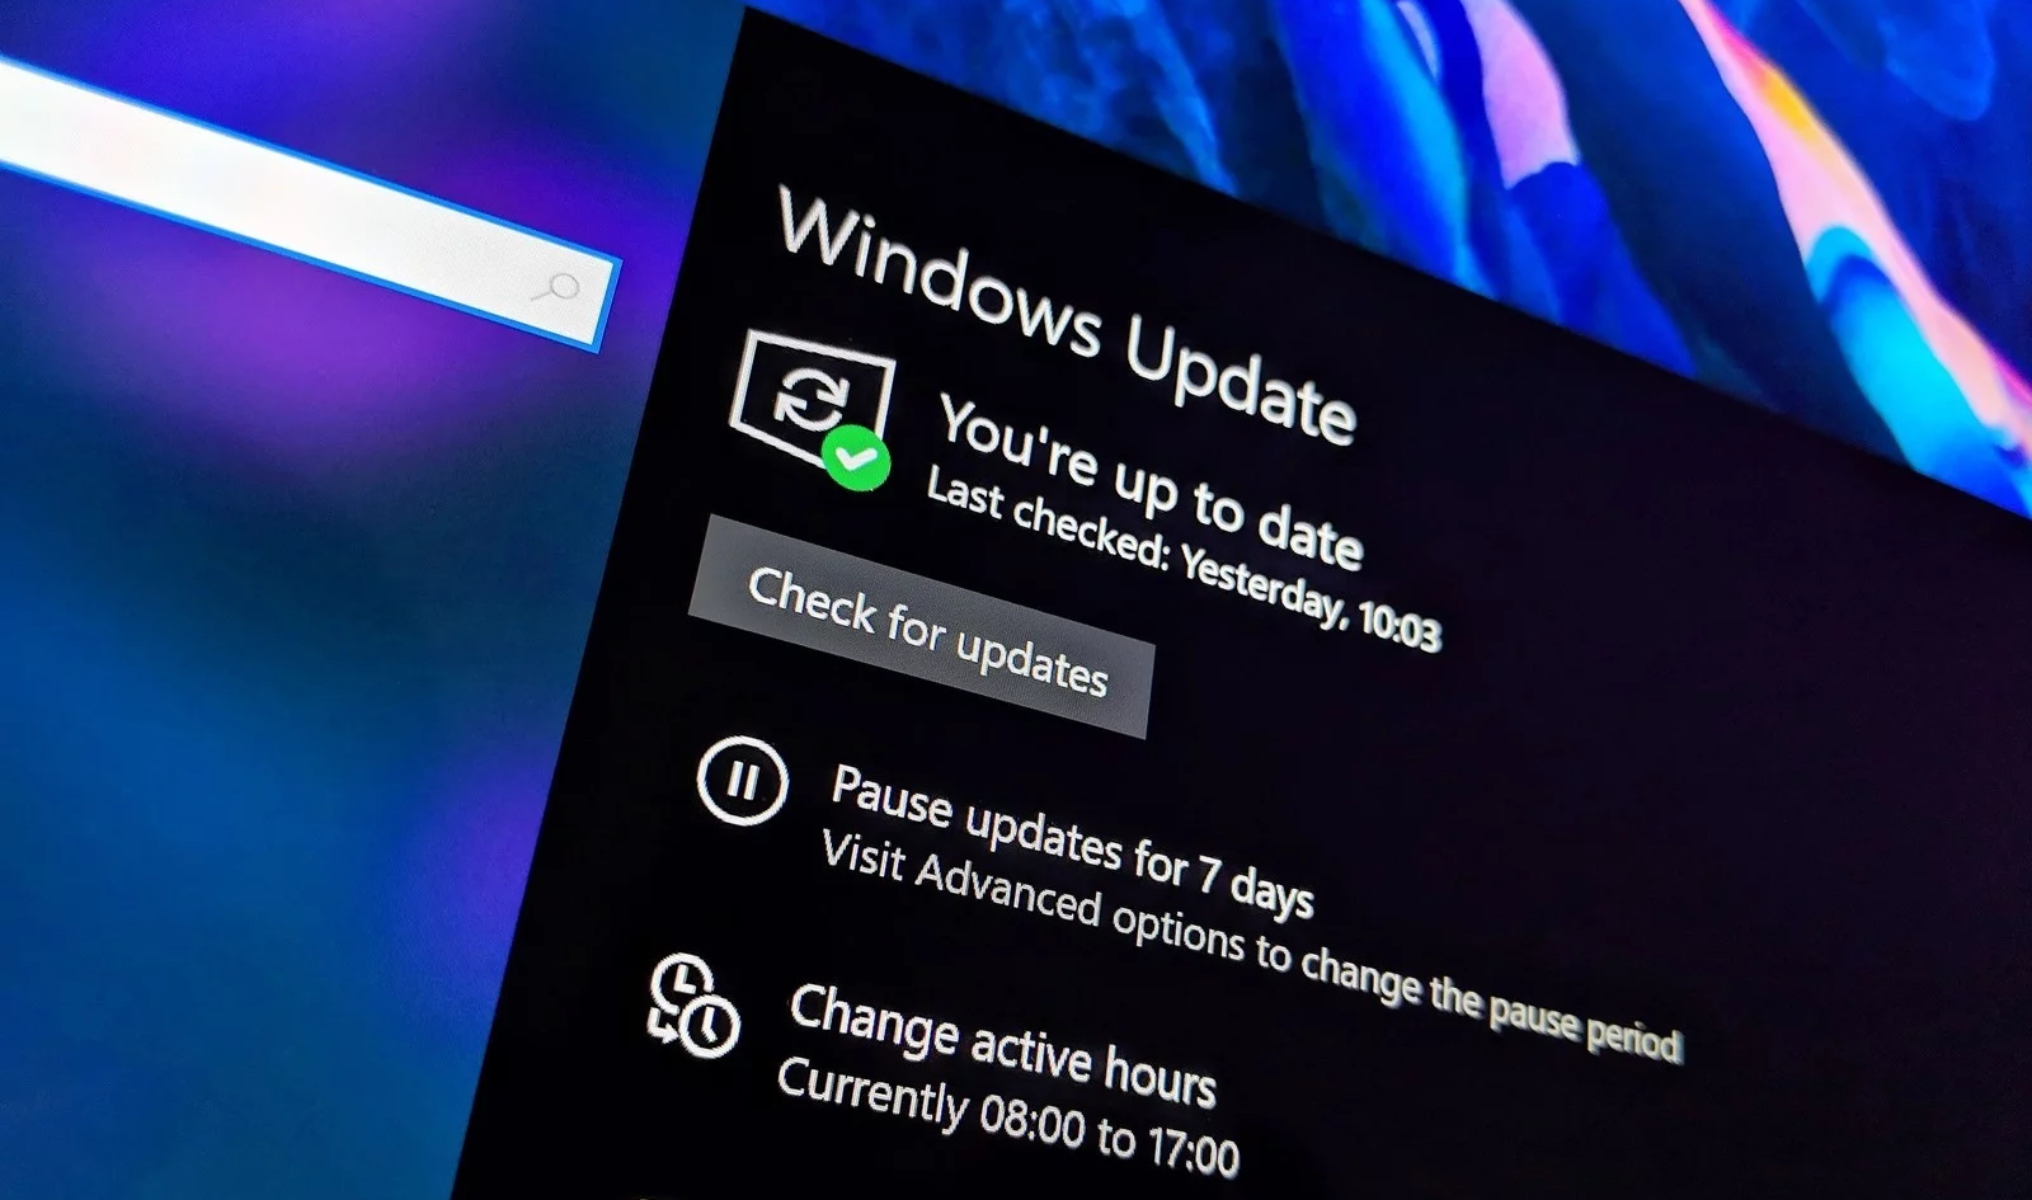 Microsoft's April 2020 Patch Tuesday arrives with fixes for 3 zero-day exploits and 15 critical flaws